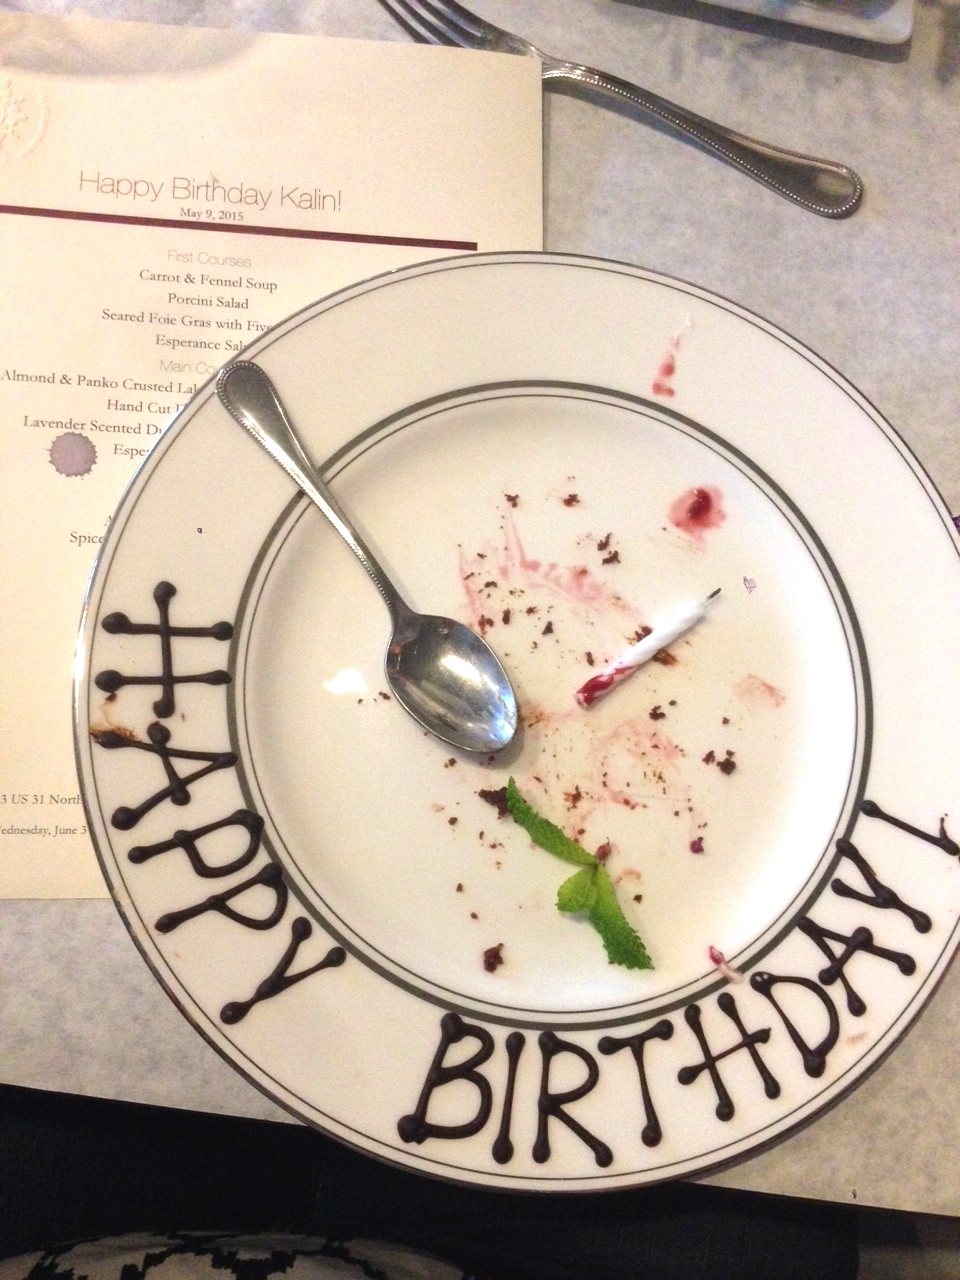 """How fitting is it that a wine drop is on the """"Happy Birthday Kalin"""" menu? #universe"""